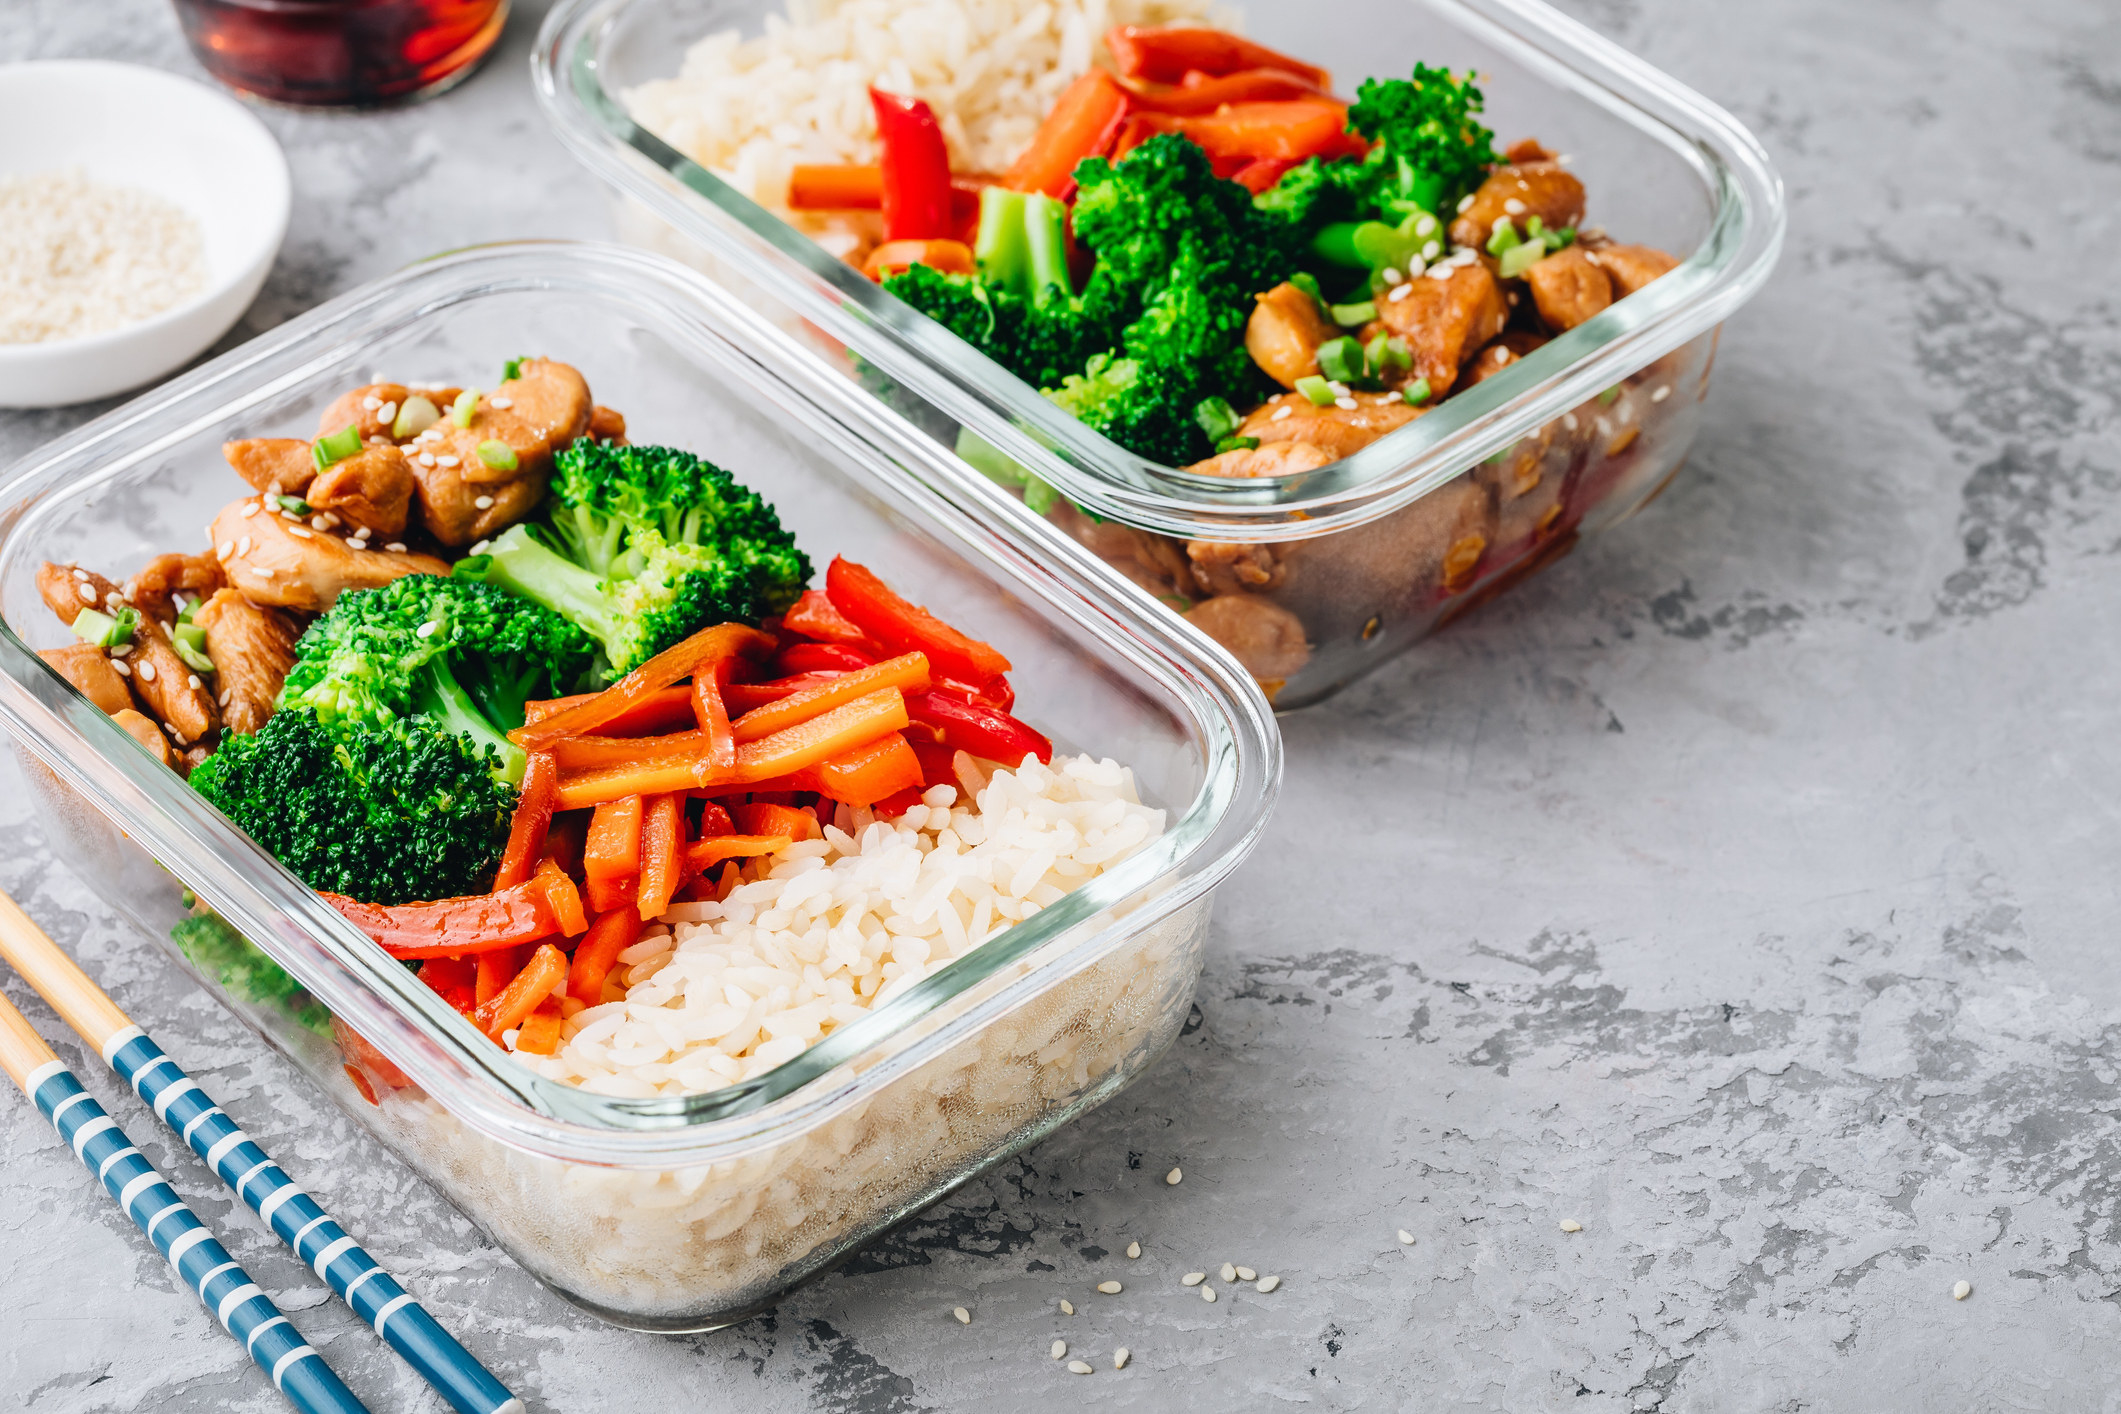 Chicken teriyaki meal prep lunch box containers with broccoli, rice and carrots